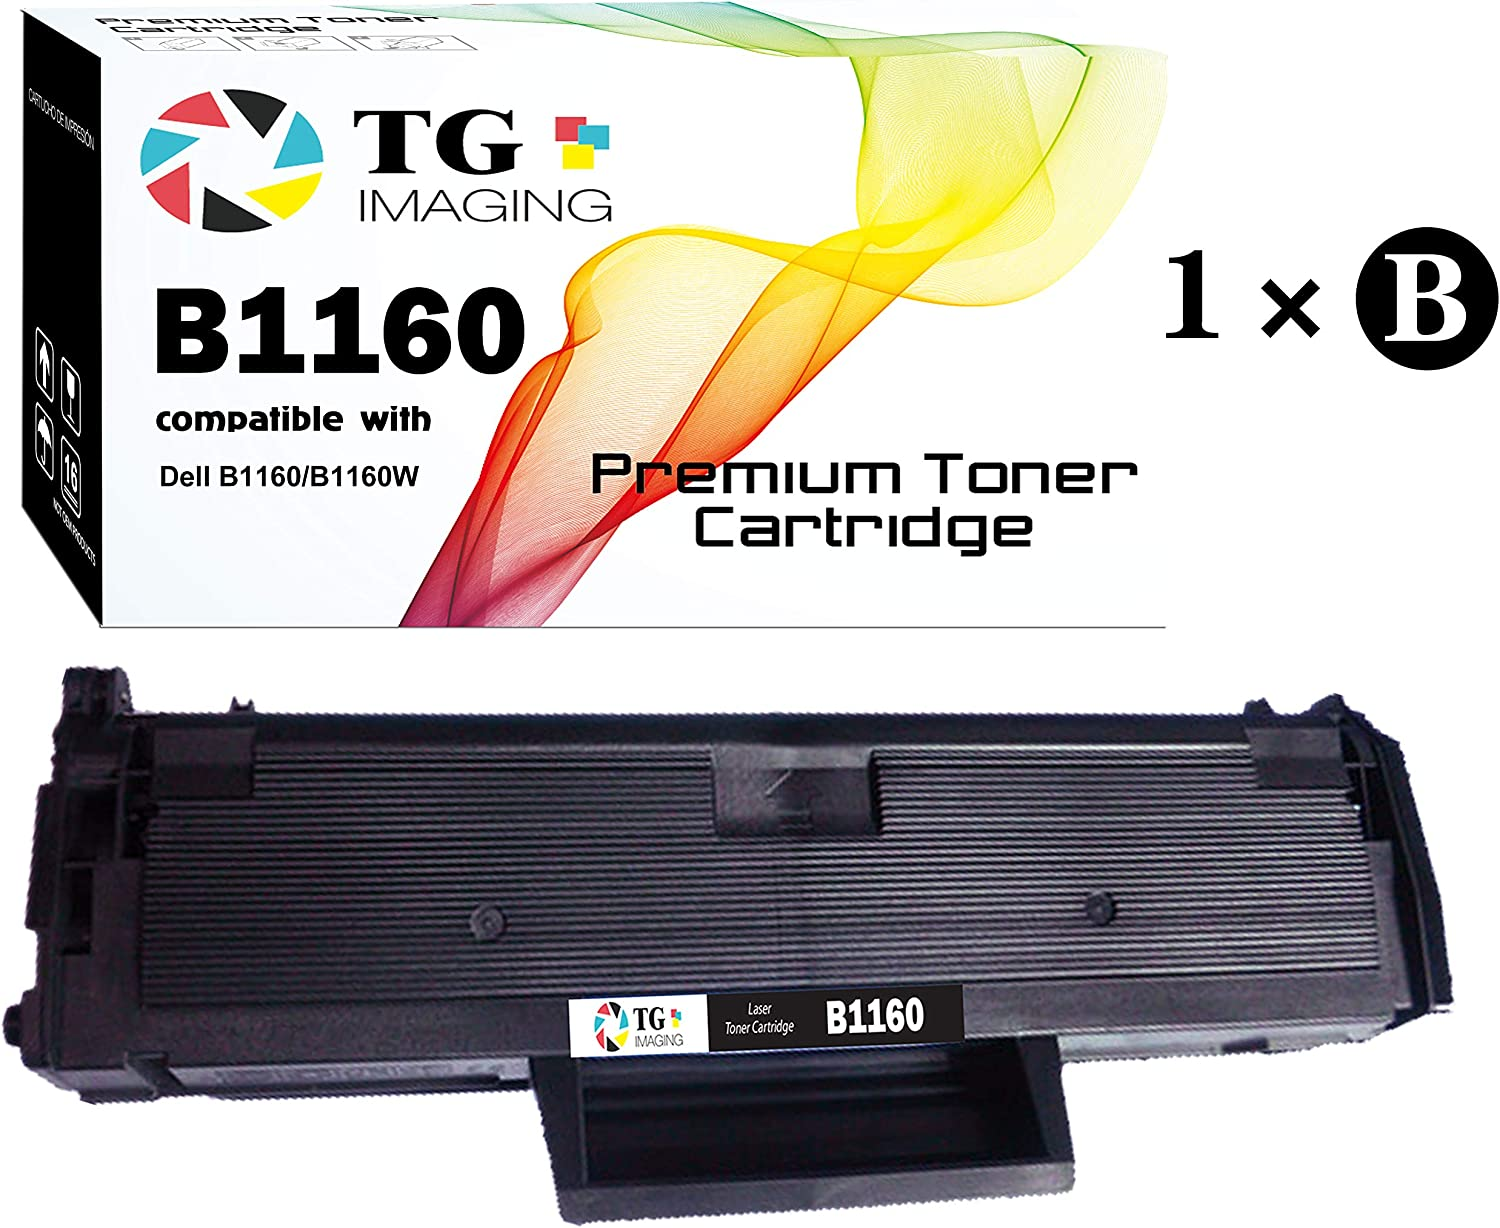 (1-Pack, Black) TG Imaging Compatible 331-7335 B1160 Toner Cartridge for Use in Laser Dell B1160, B1160w, B1163w, B1165nfw Printer